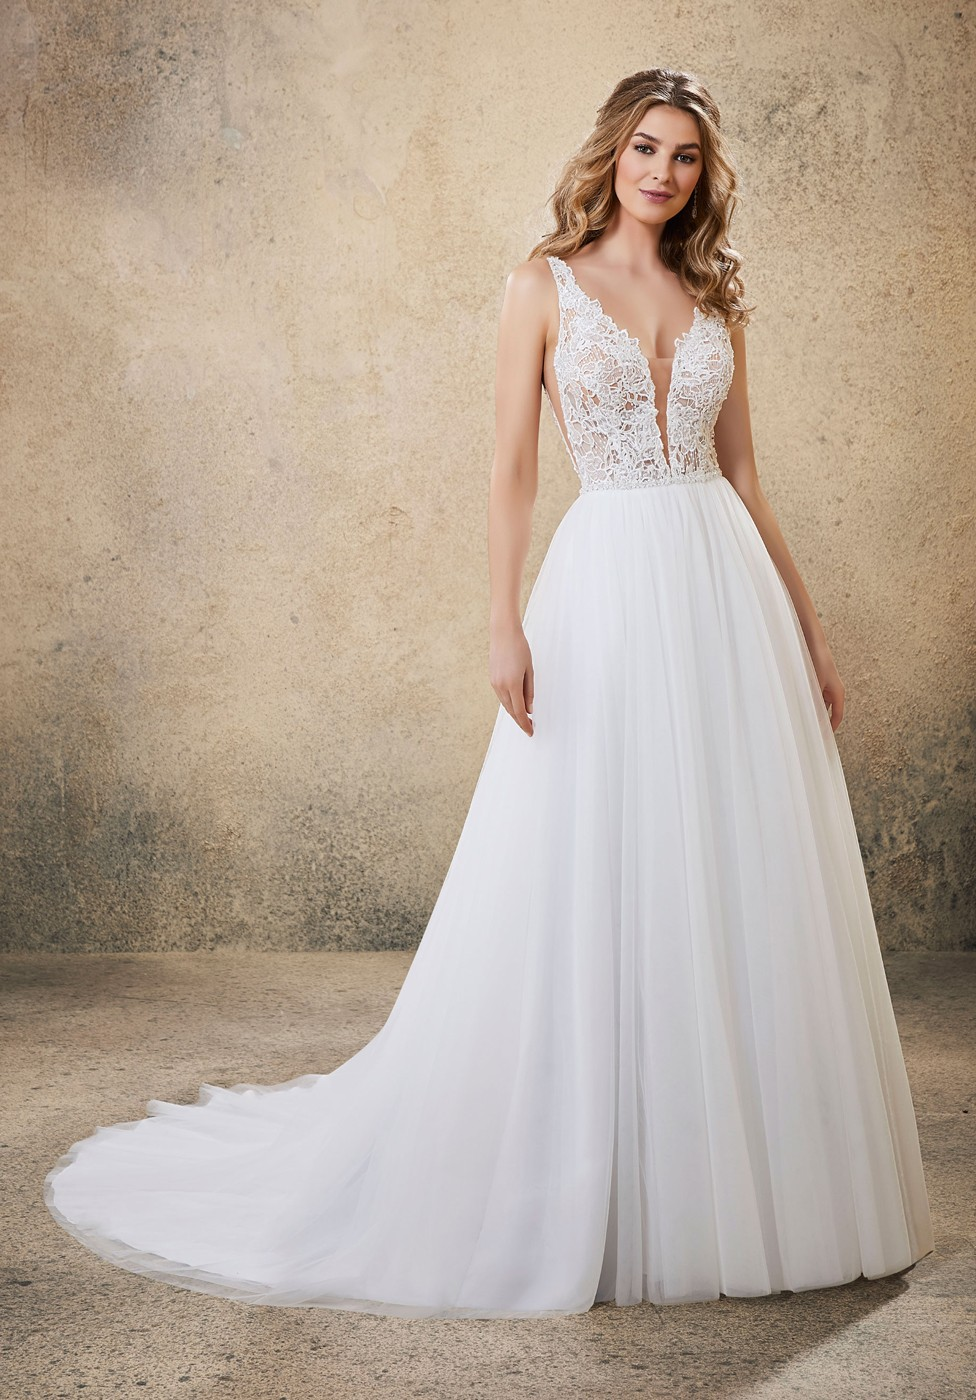 efac695b21 Mori Lee 6914 Raven Dress - MadameBridal.com